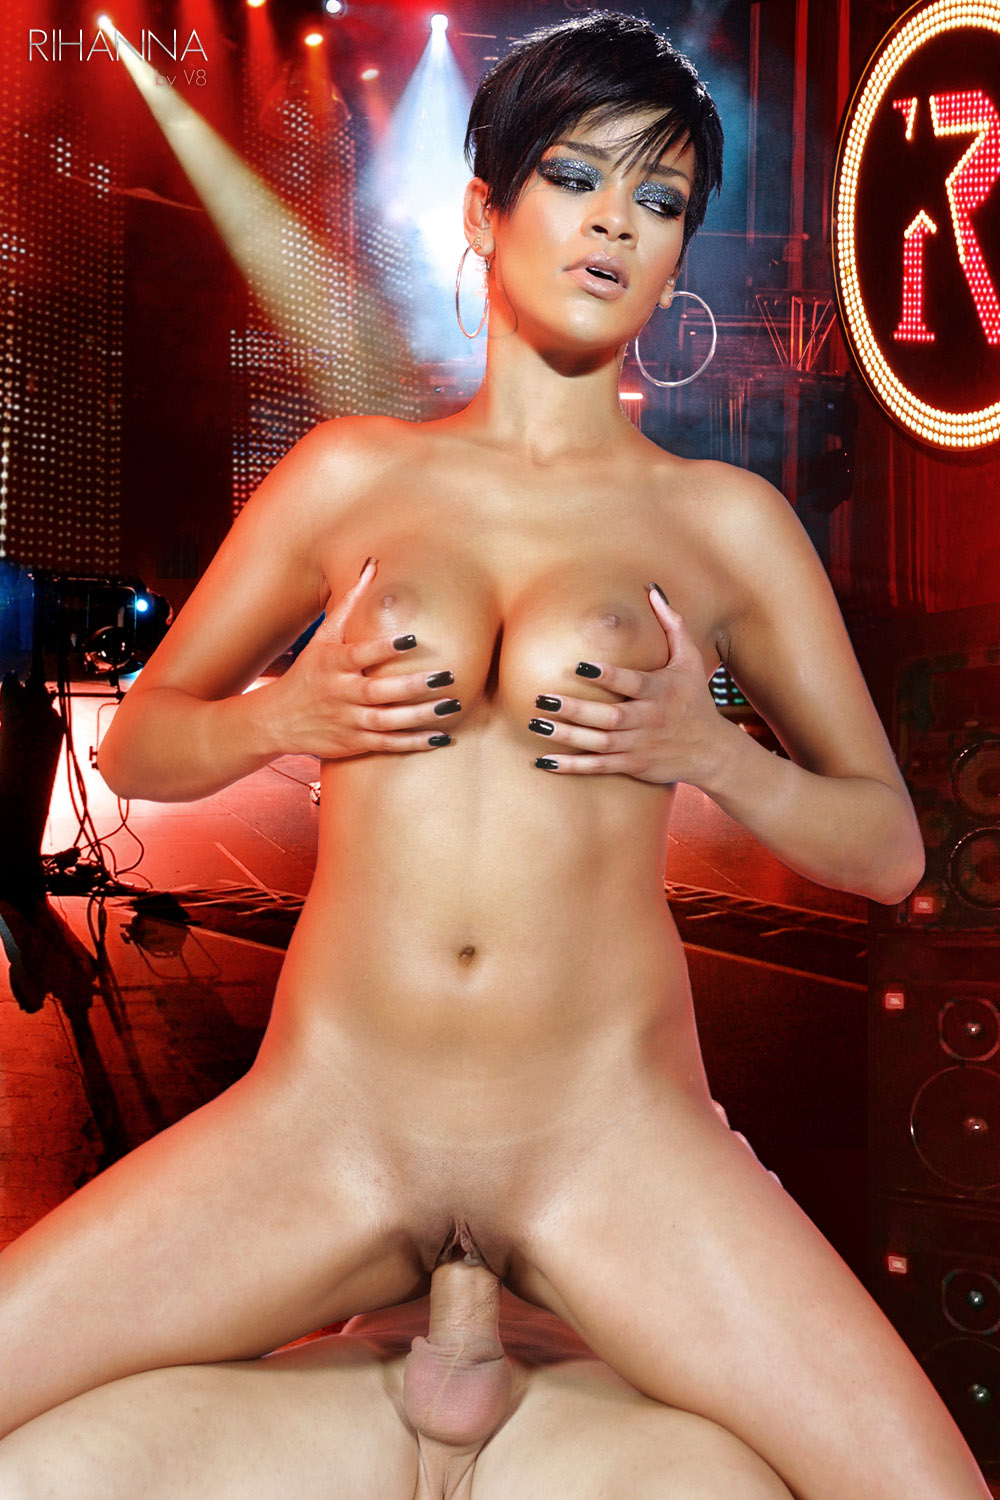 Doubt. hot rihanna fake nude think